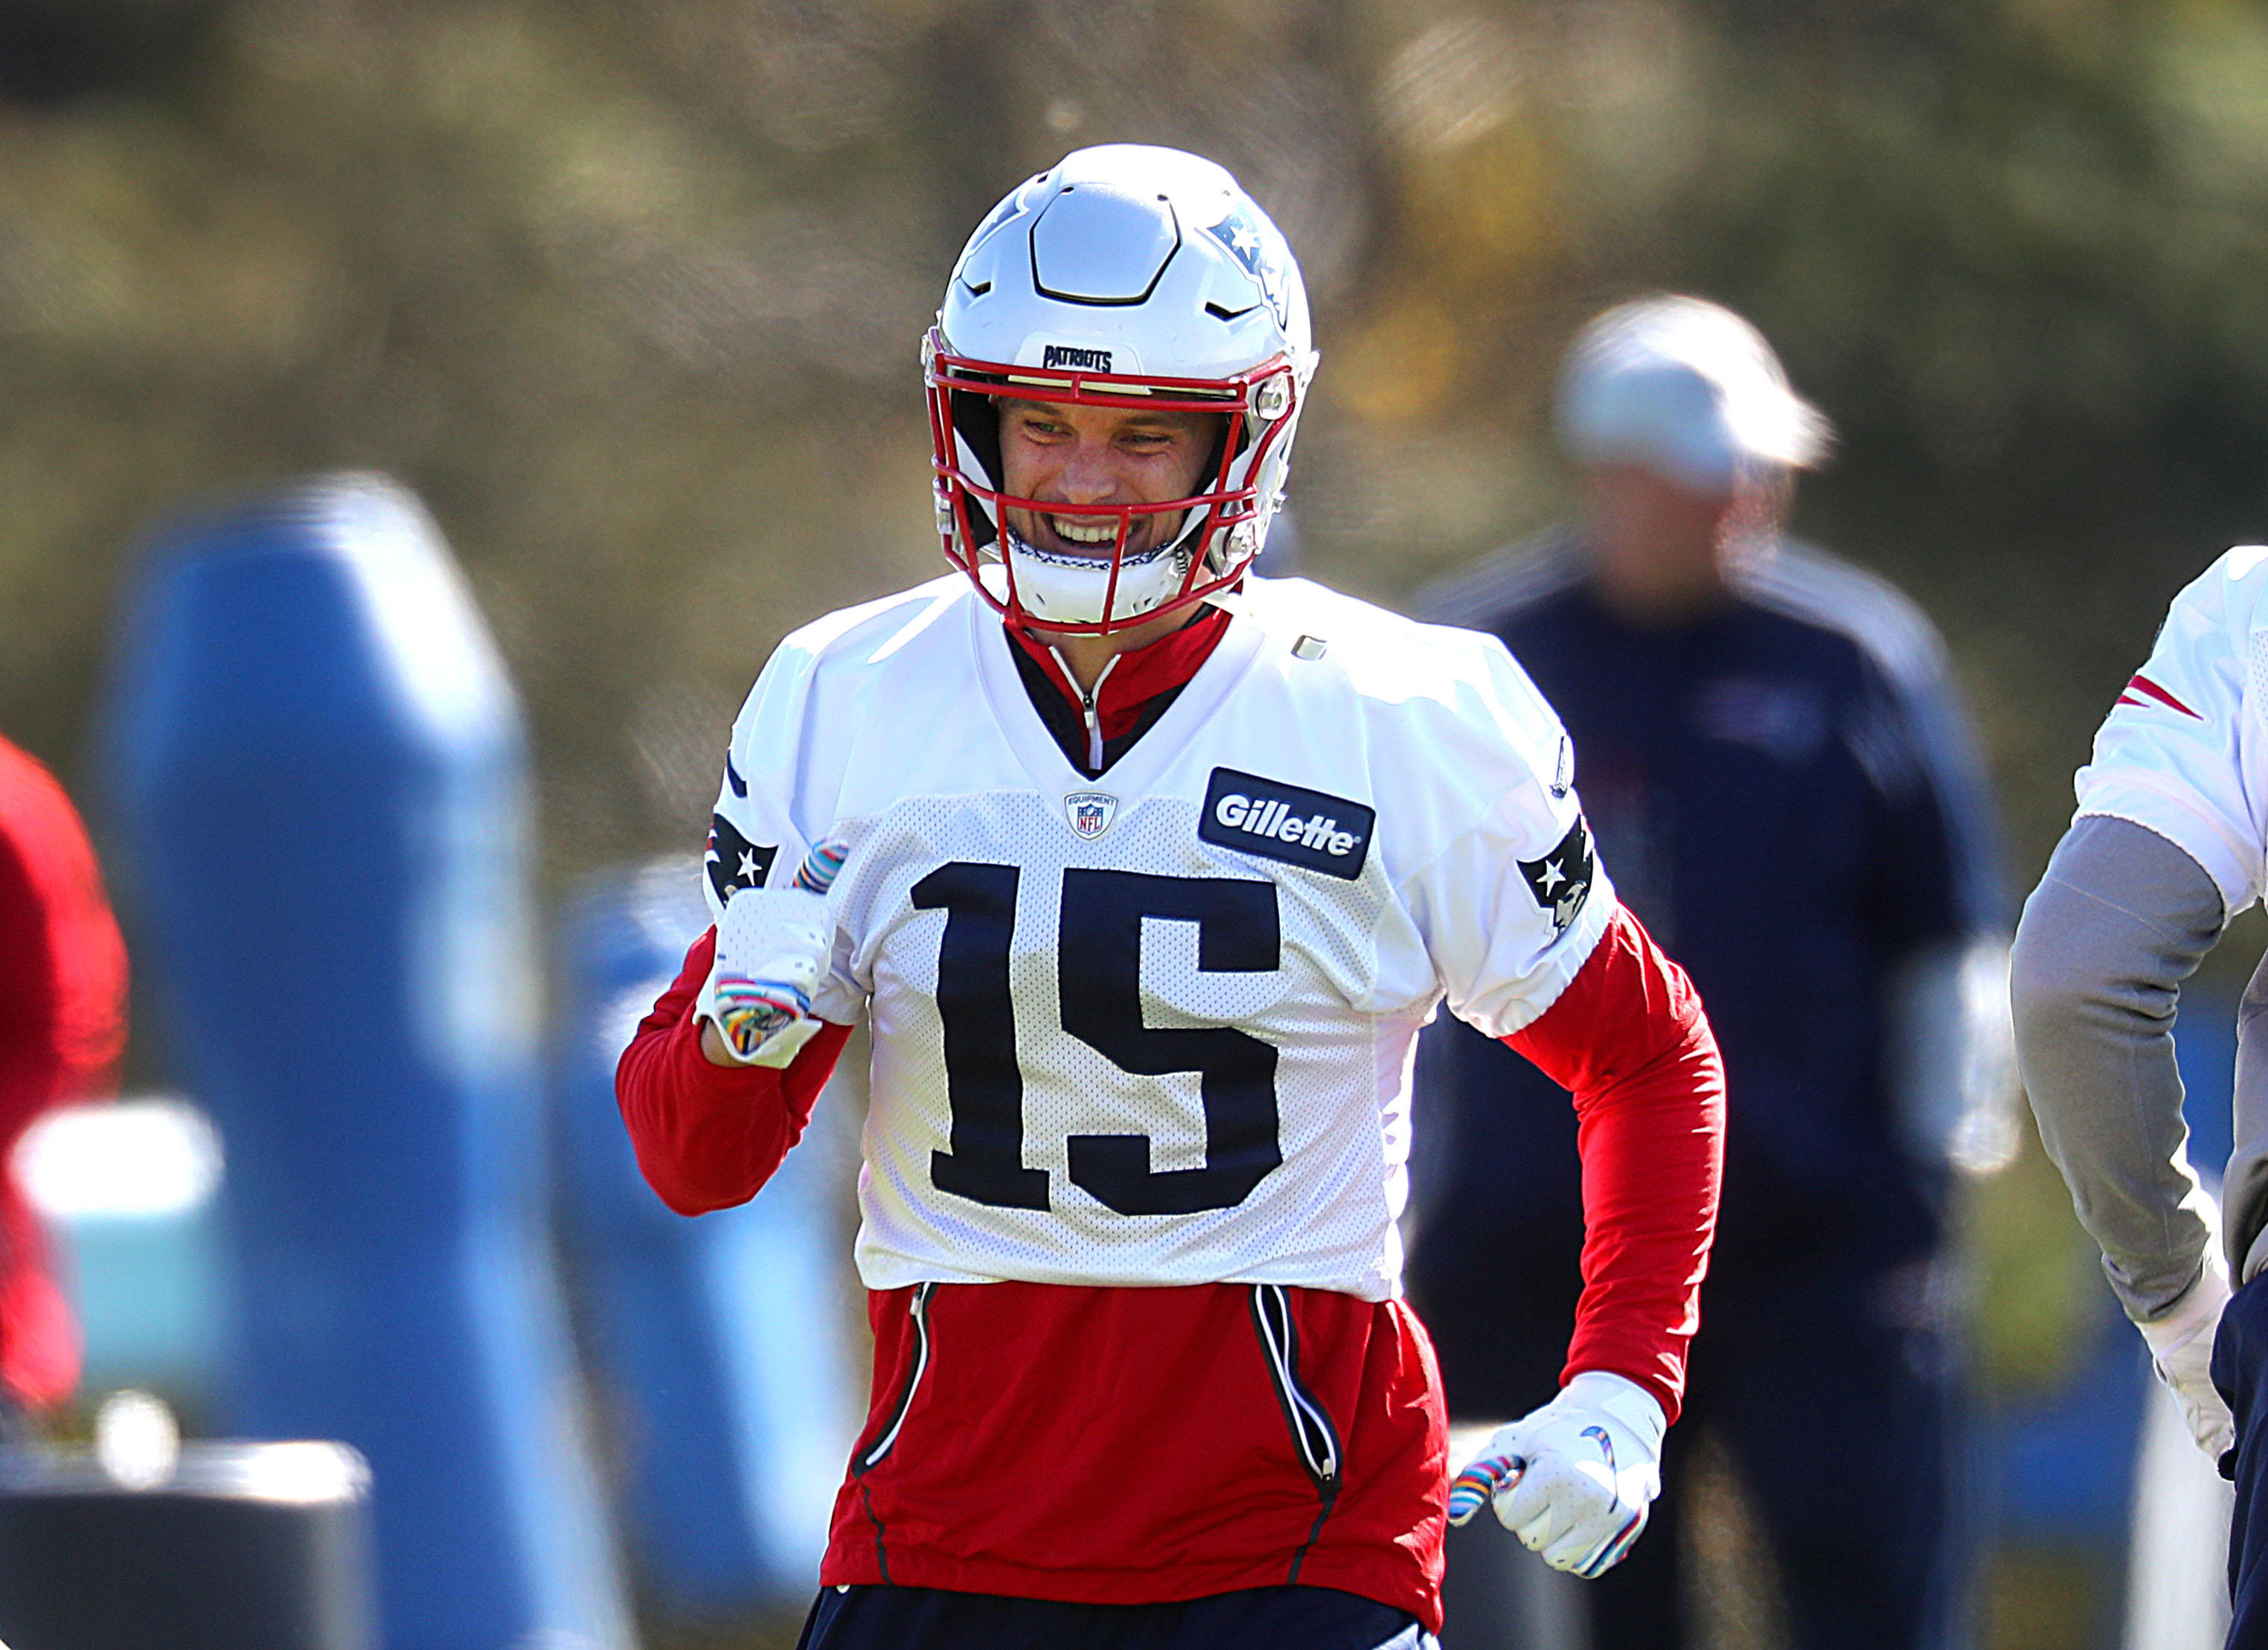 Why aren't the Patriots throwing to Chris Hogan more? - The Boston ...